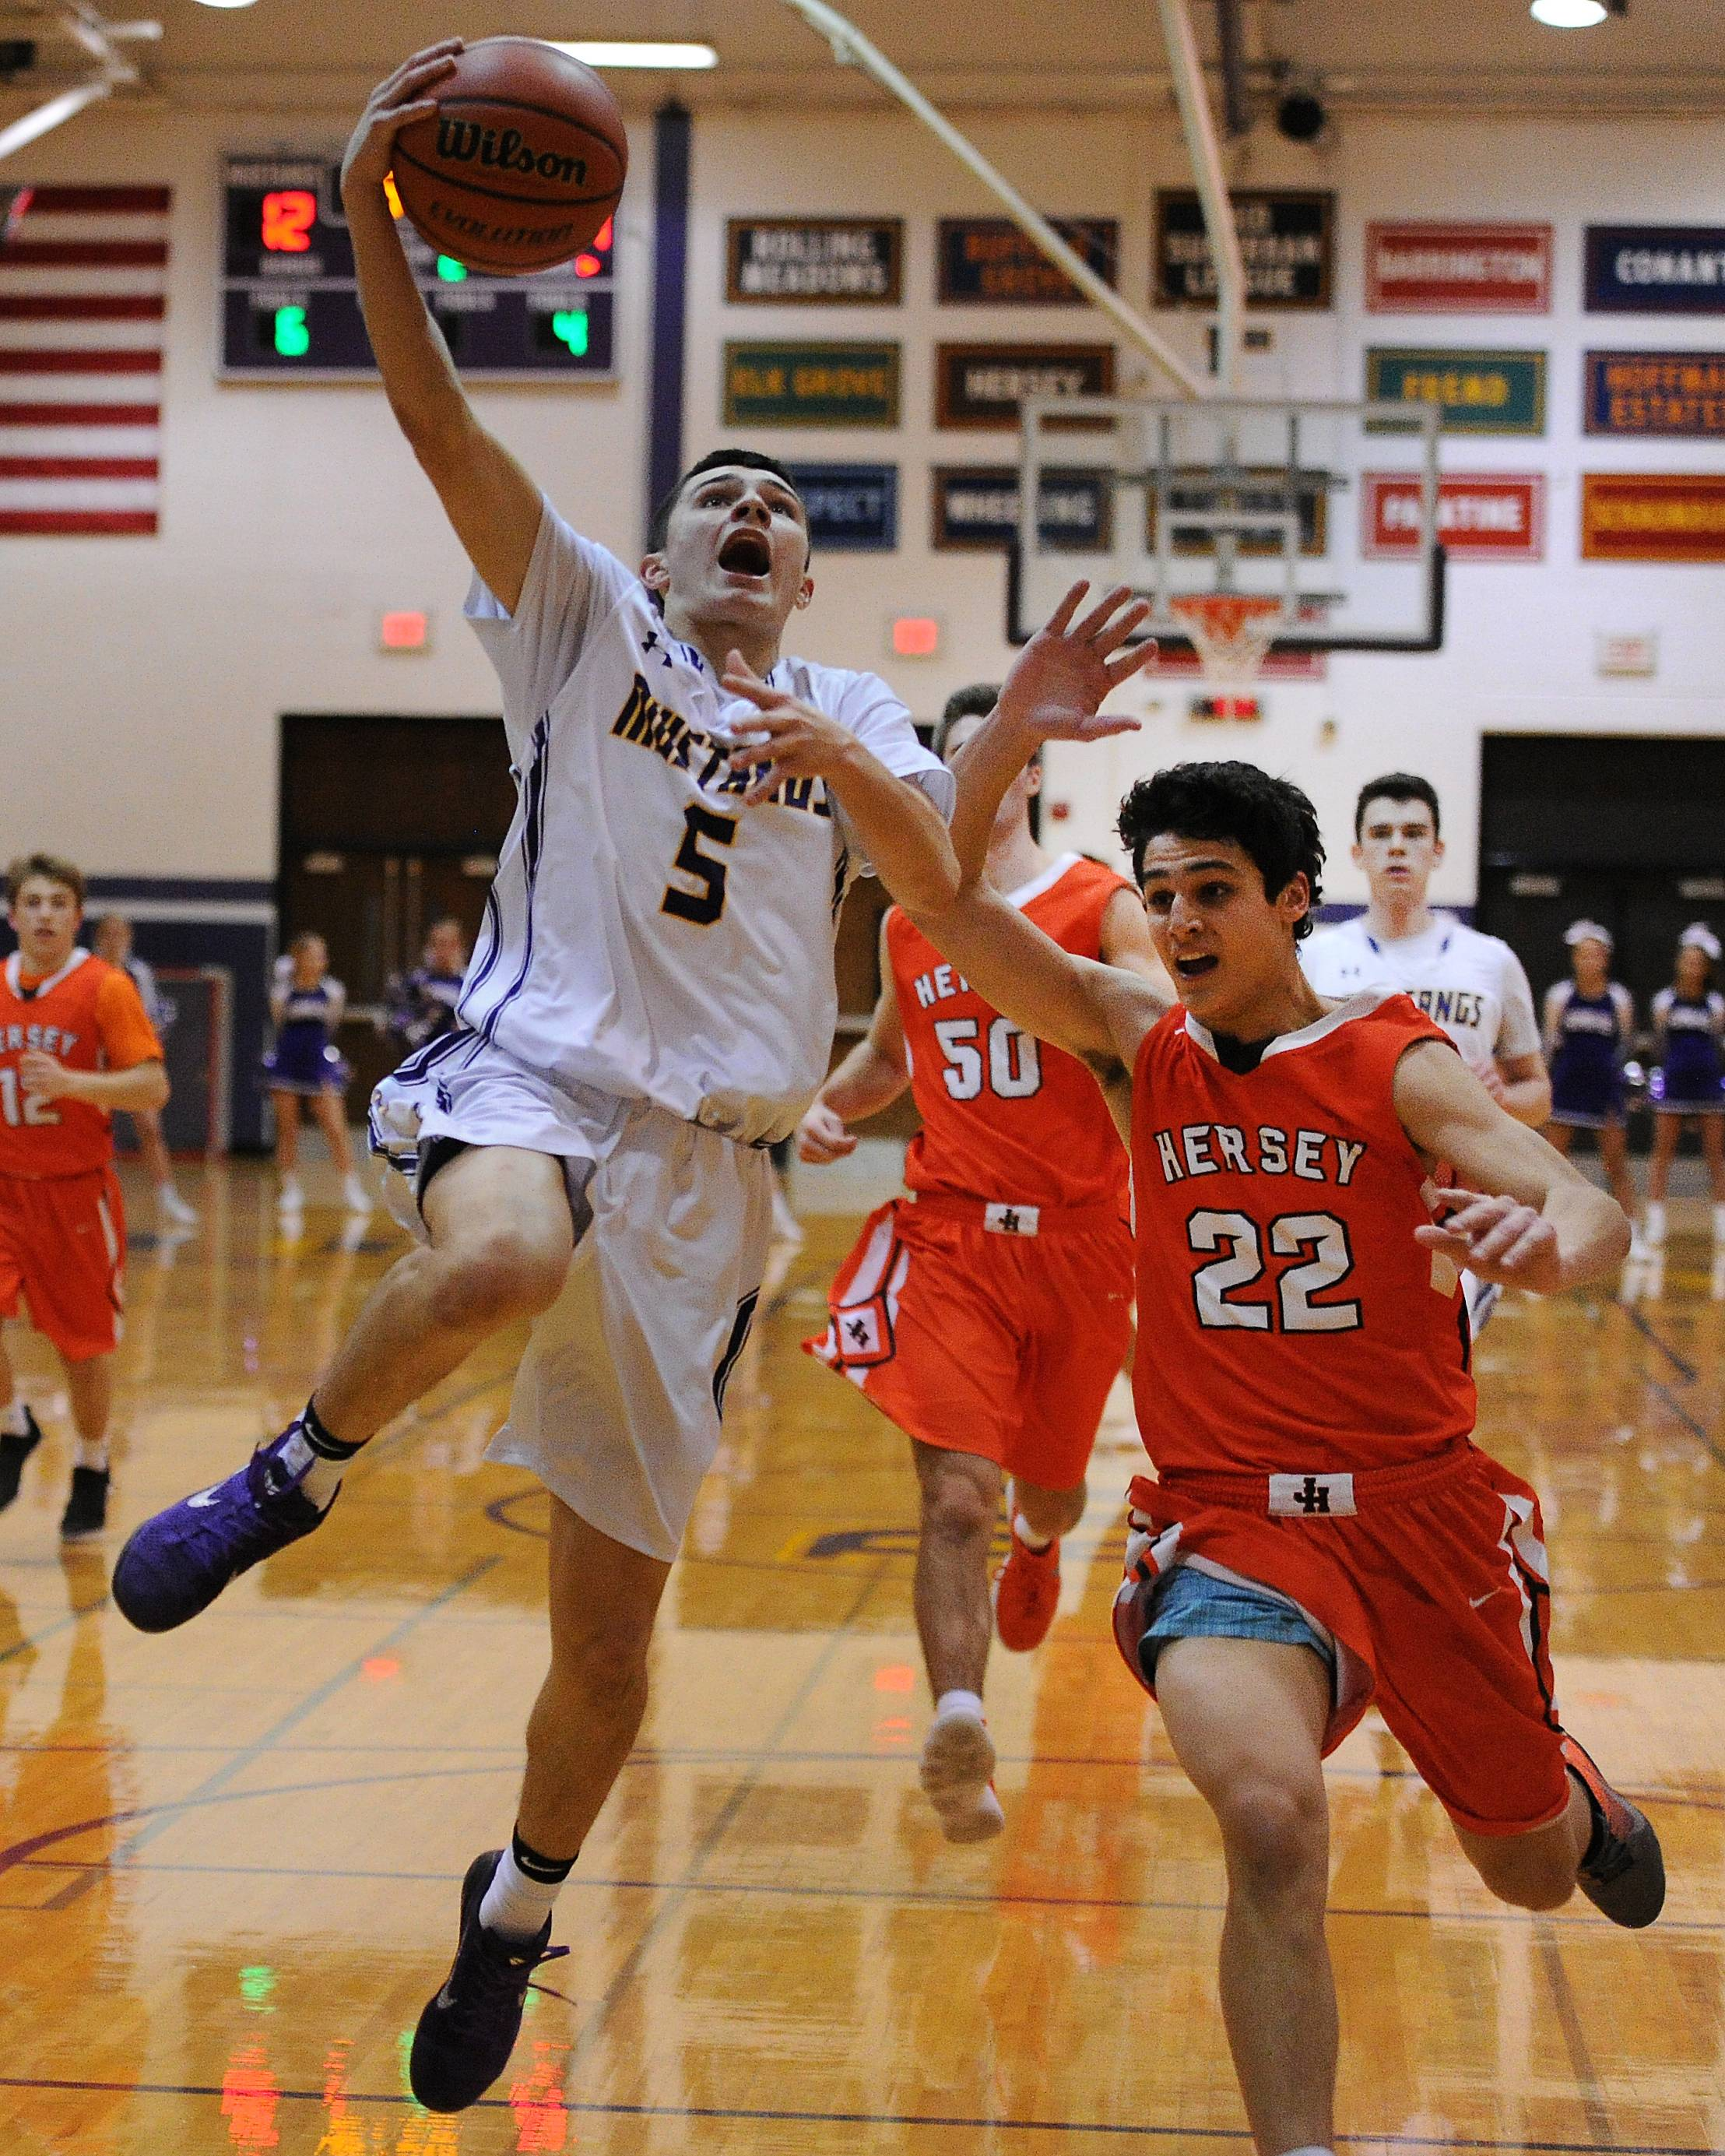 Rolling Meadows' Willis Goodwin delivers a basket despite pressure from Hersey's Jace Coffaro in the first half at Rolling Meadows on Friday.